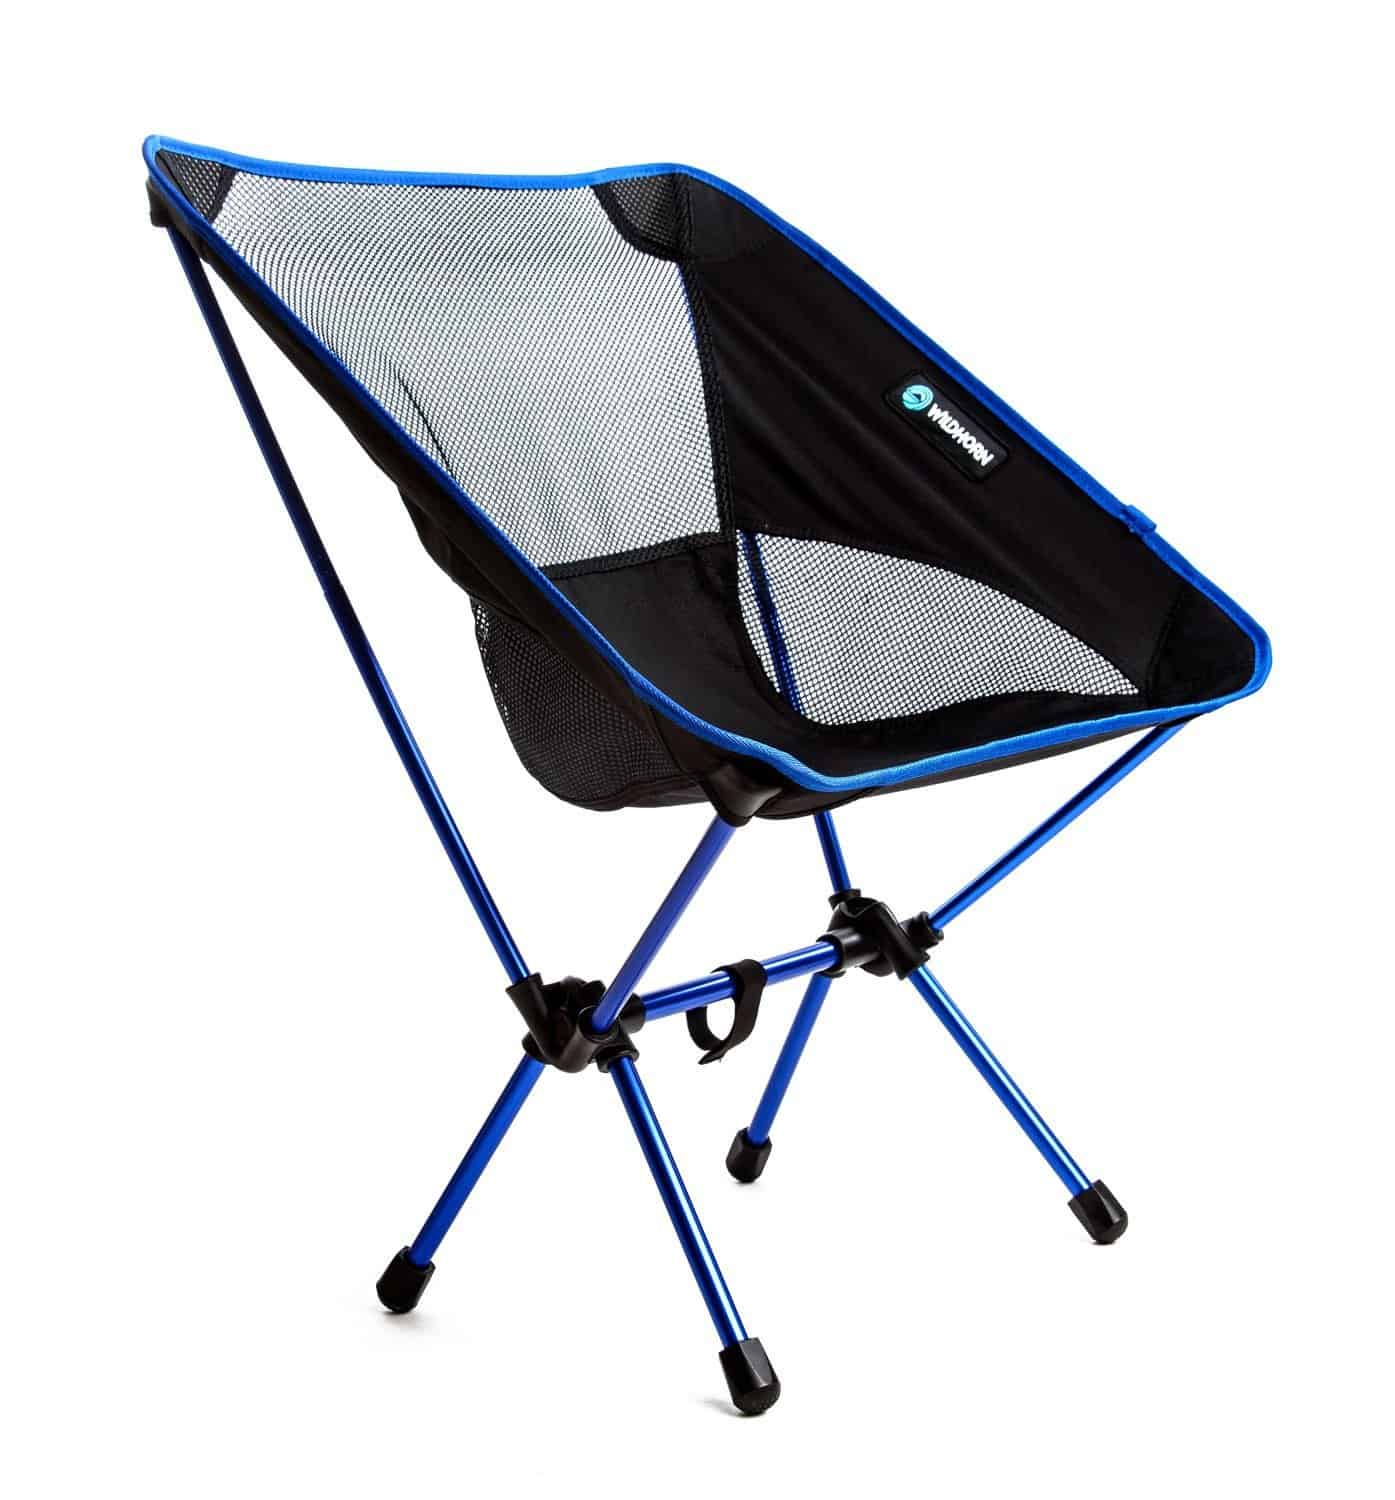 compact camping chair high tables and chairs the beach with a secret weapon no more sinking in